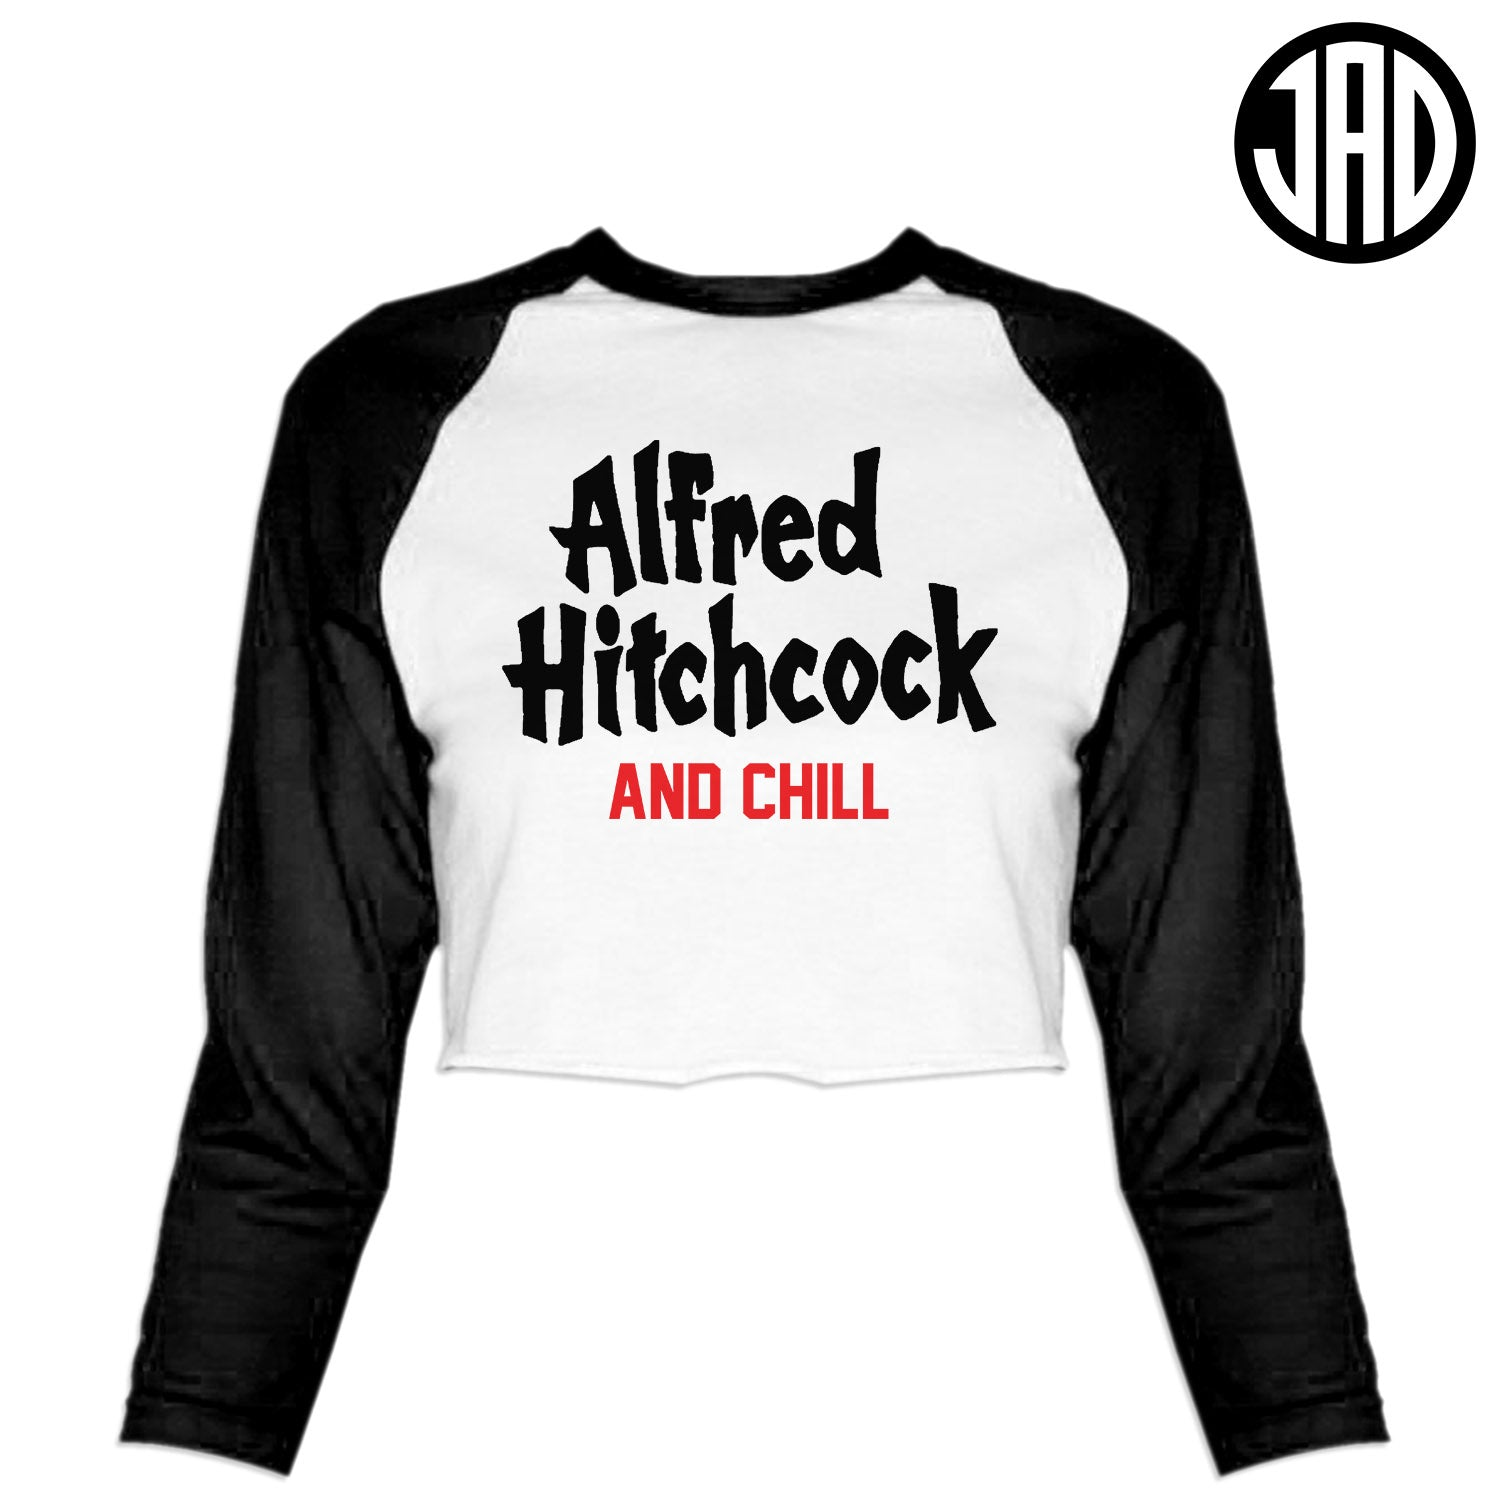 Hitchcock & Chill - Women's Cropped Baseball Tee